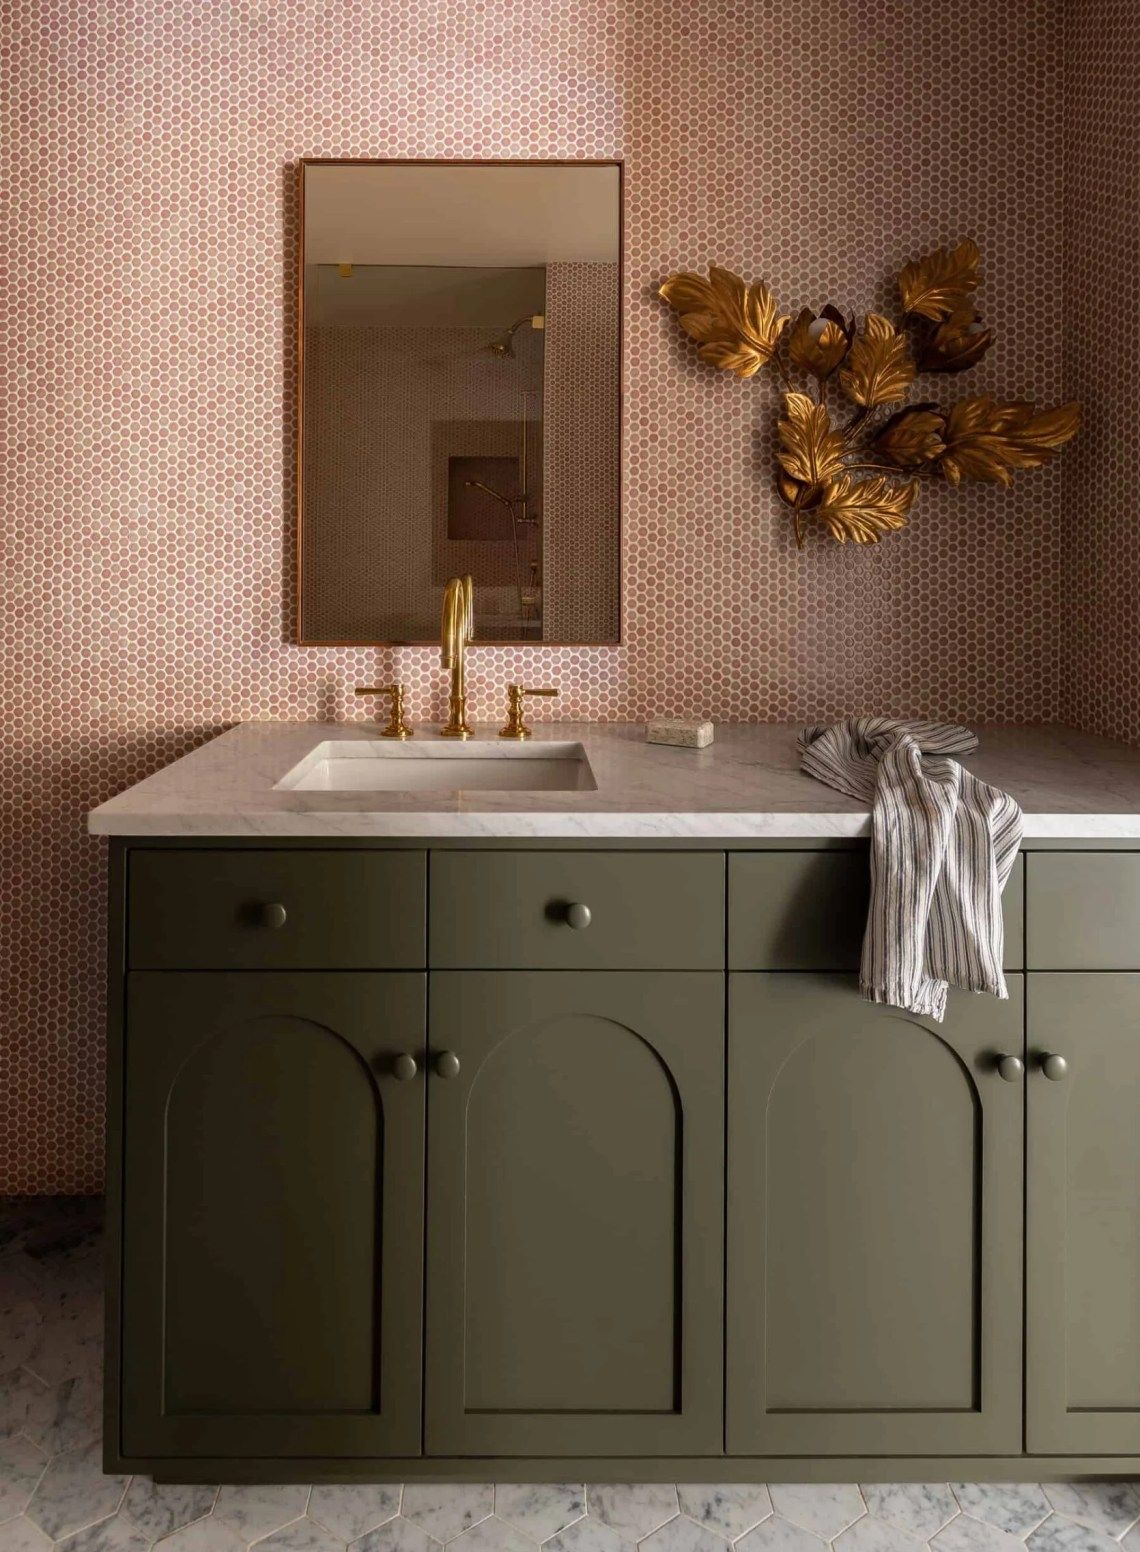 10 Bathroom Trends We Are Expecting To See In 2021 (Some ...